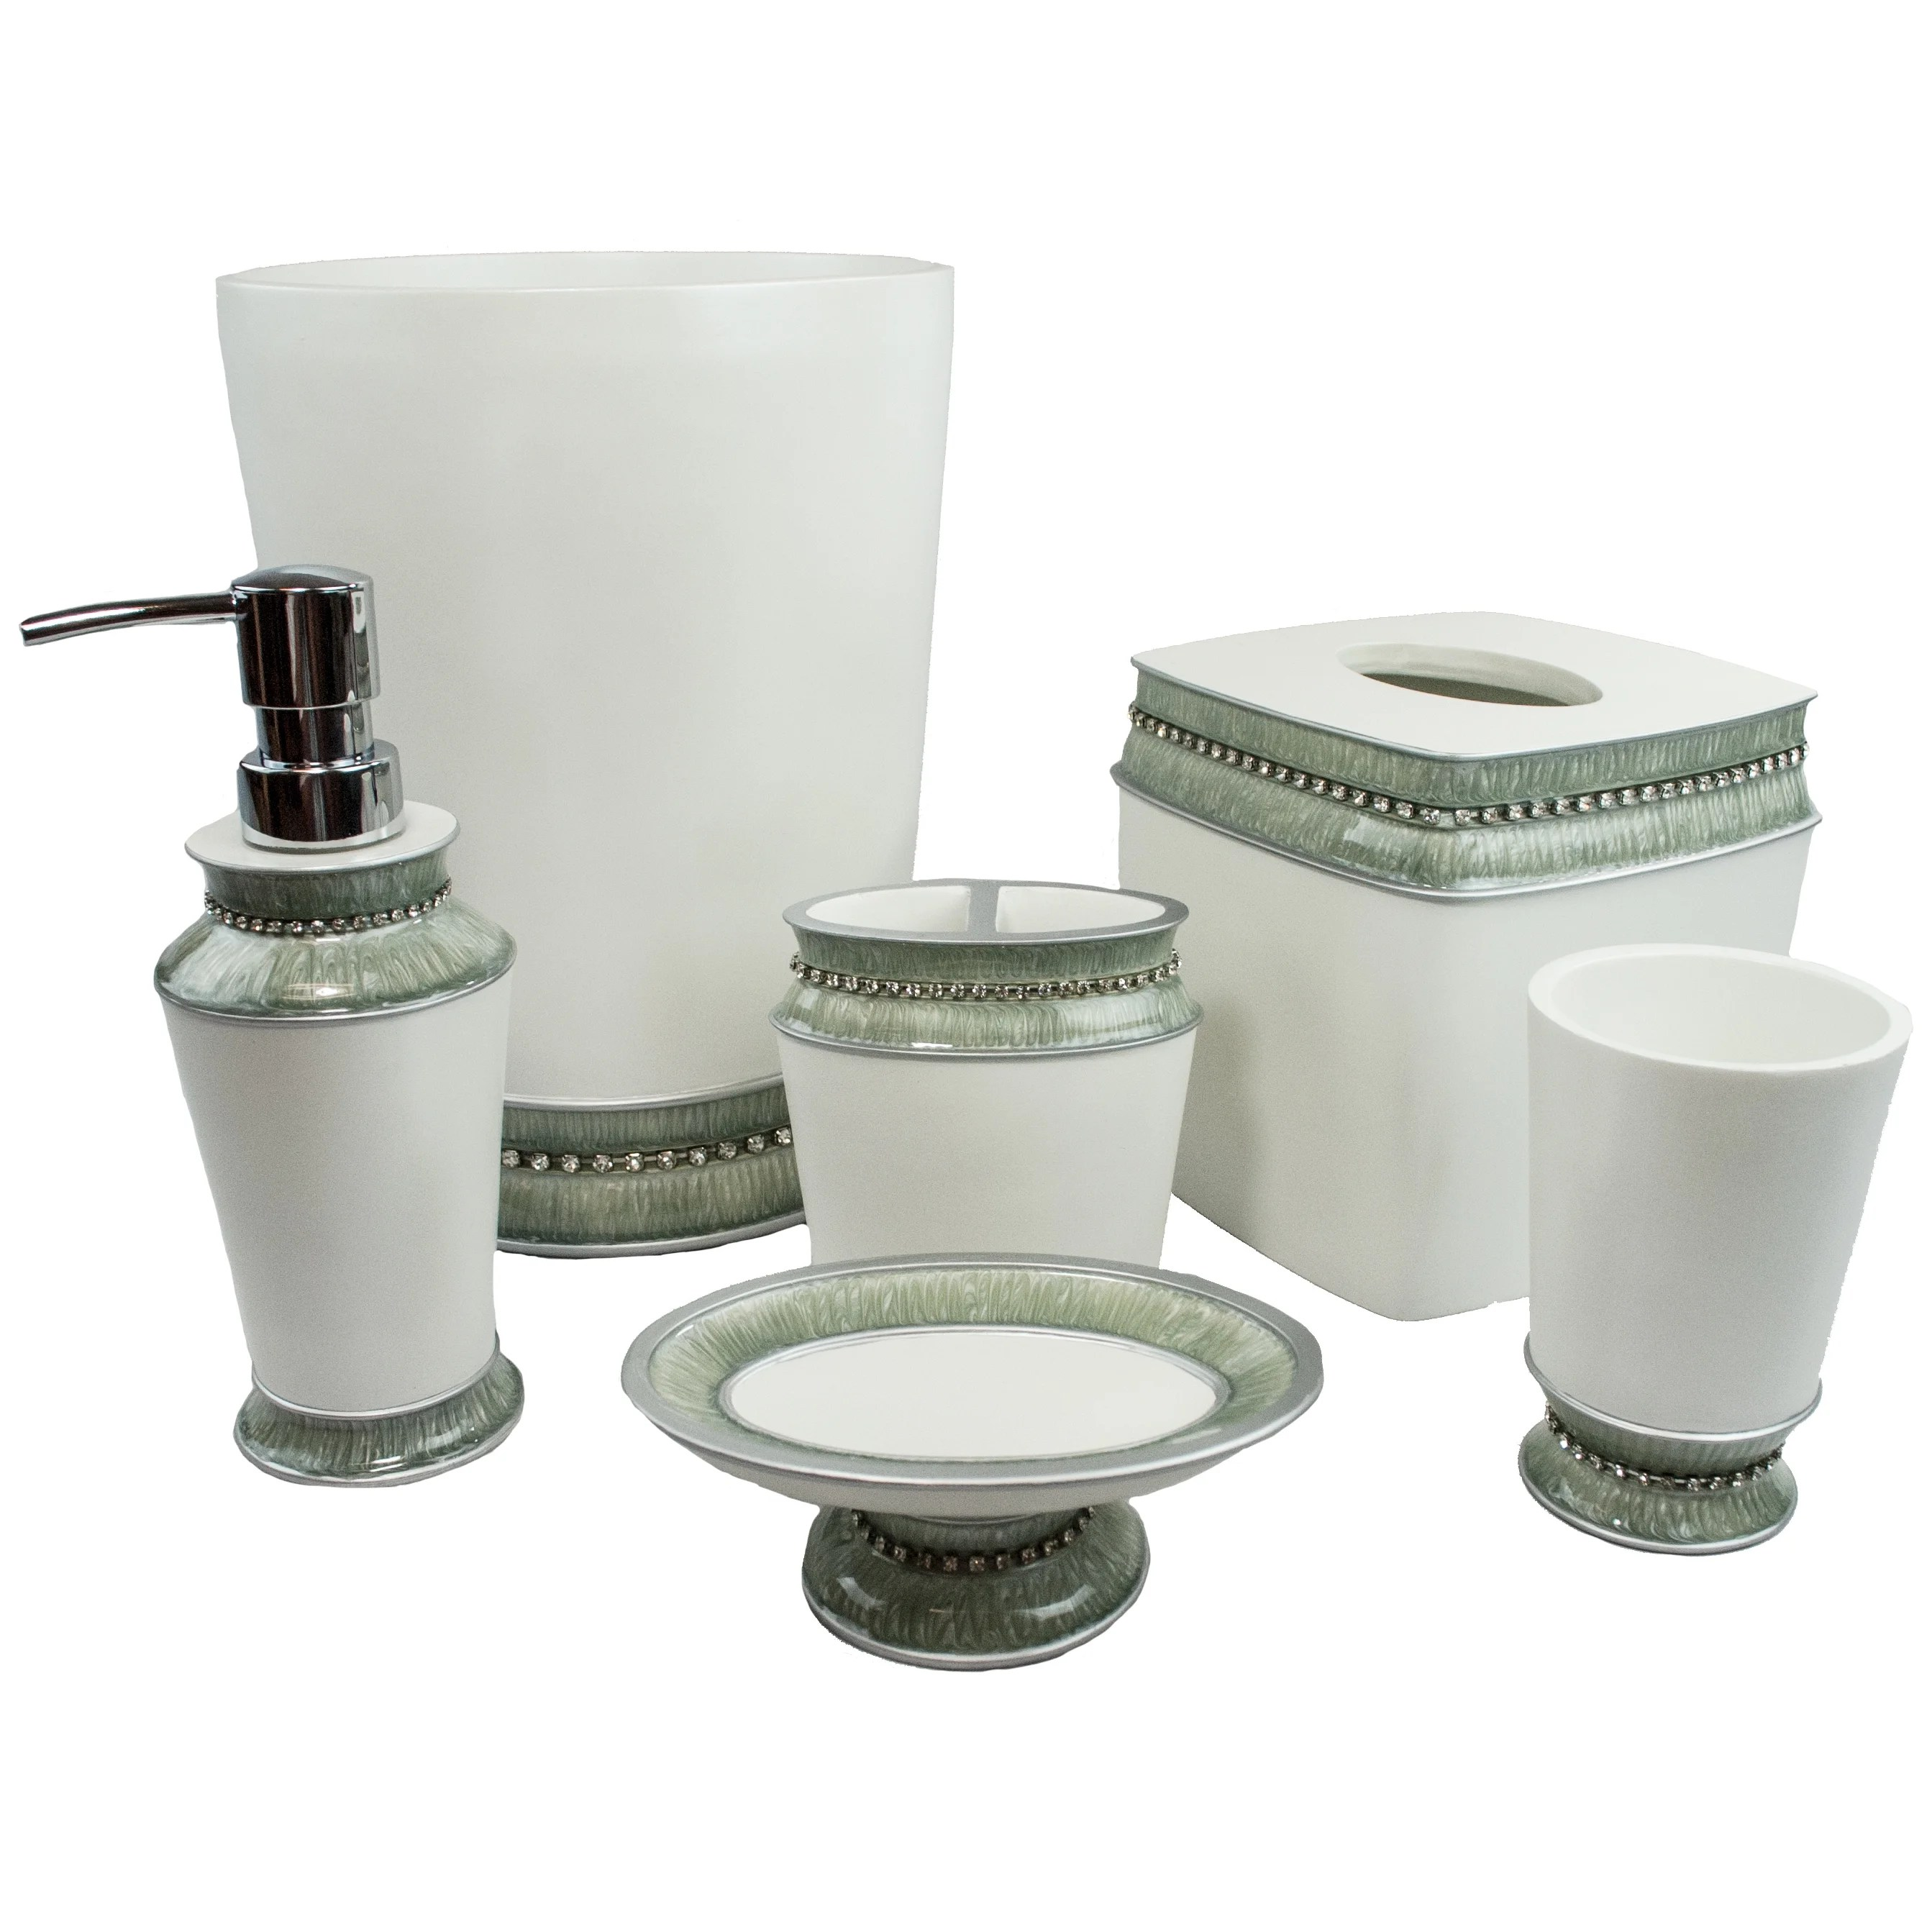 Bathroom Dispenser Set Sherry Kline Victoria Jewel 6 Piece Bath Accessory Set 4 Color Options